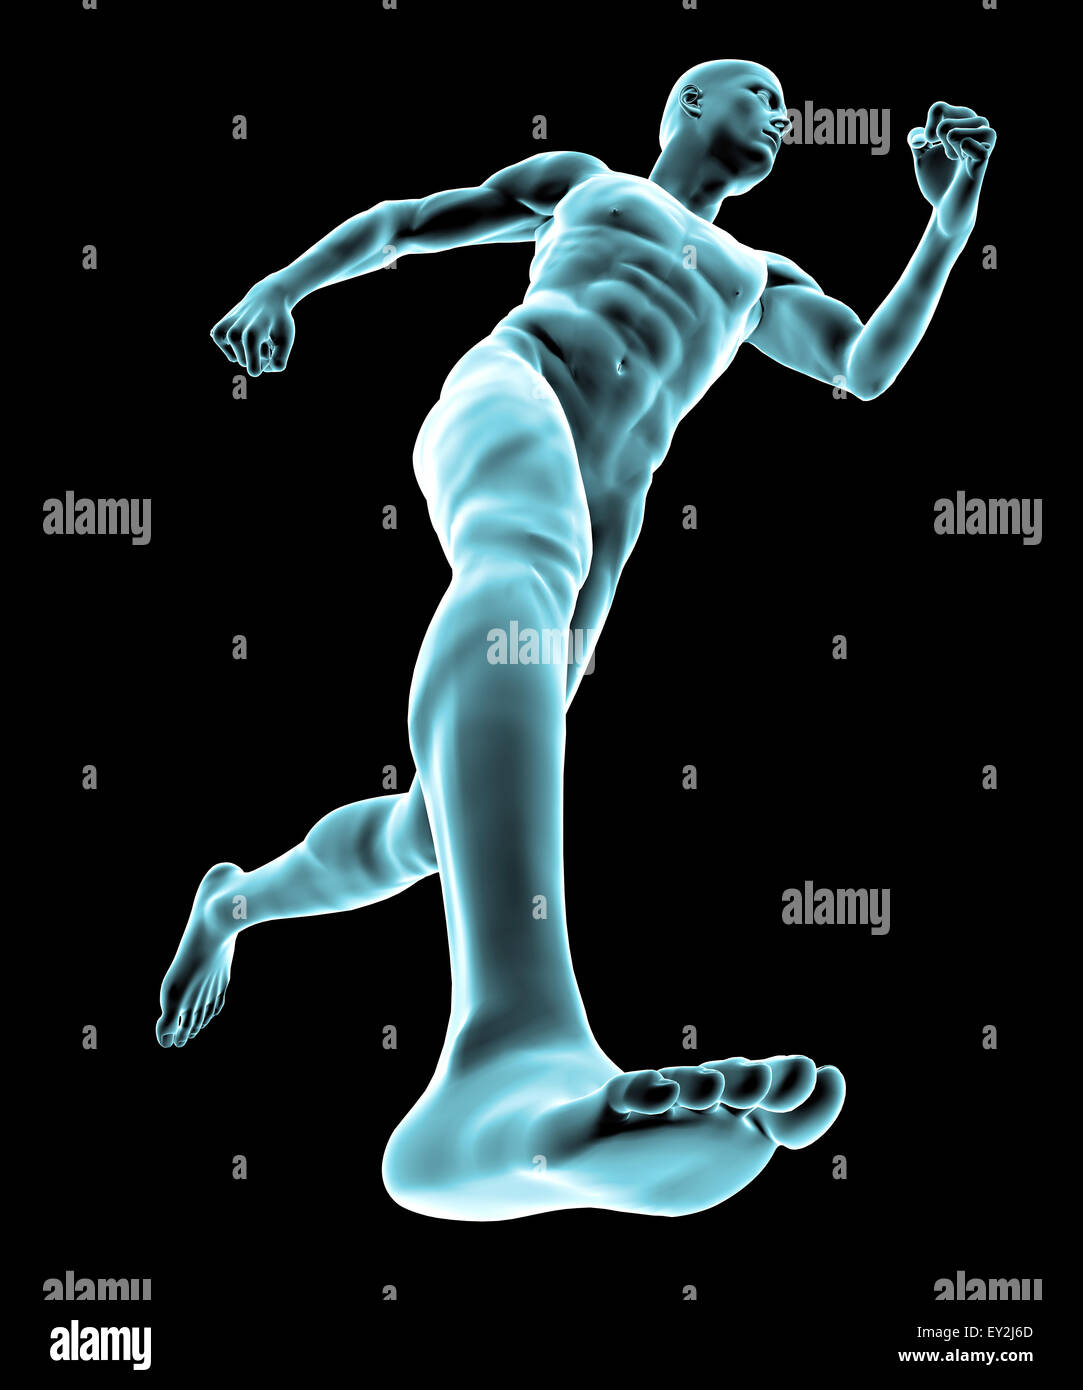 3d X ray of human body and skeleton Stock Photo: 85495381